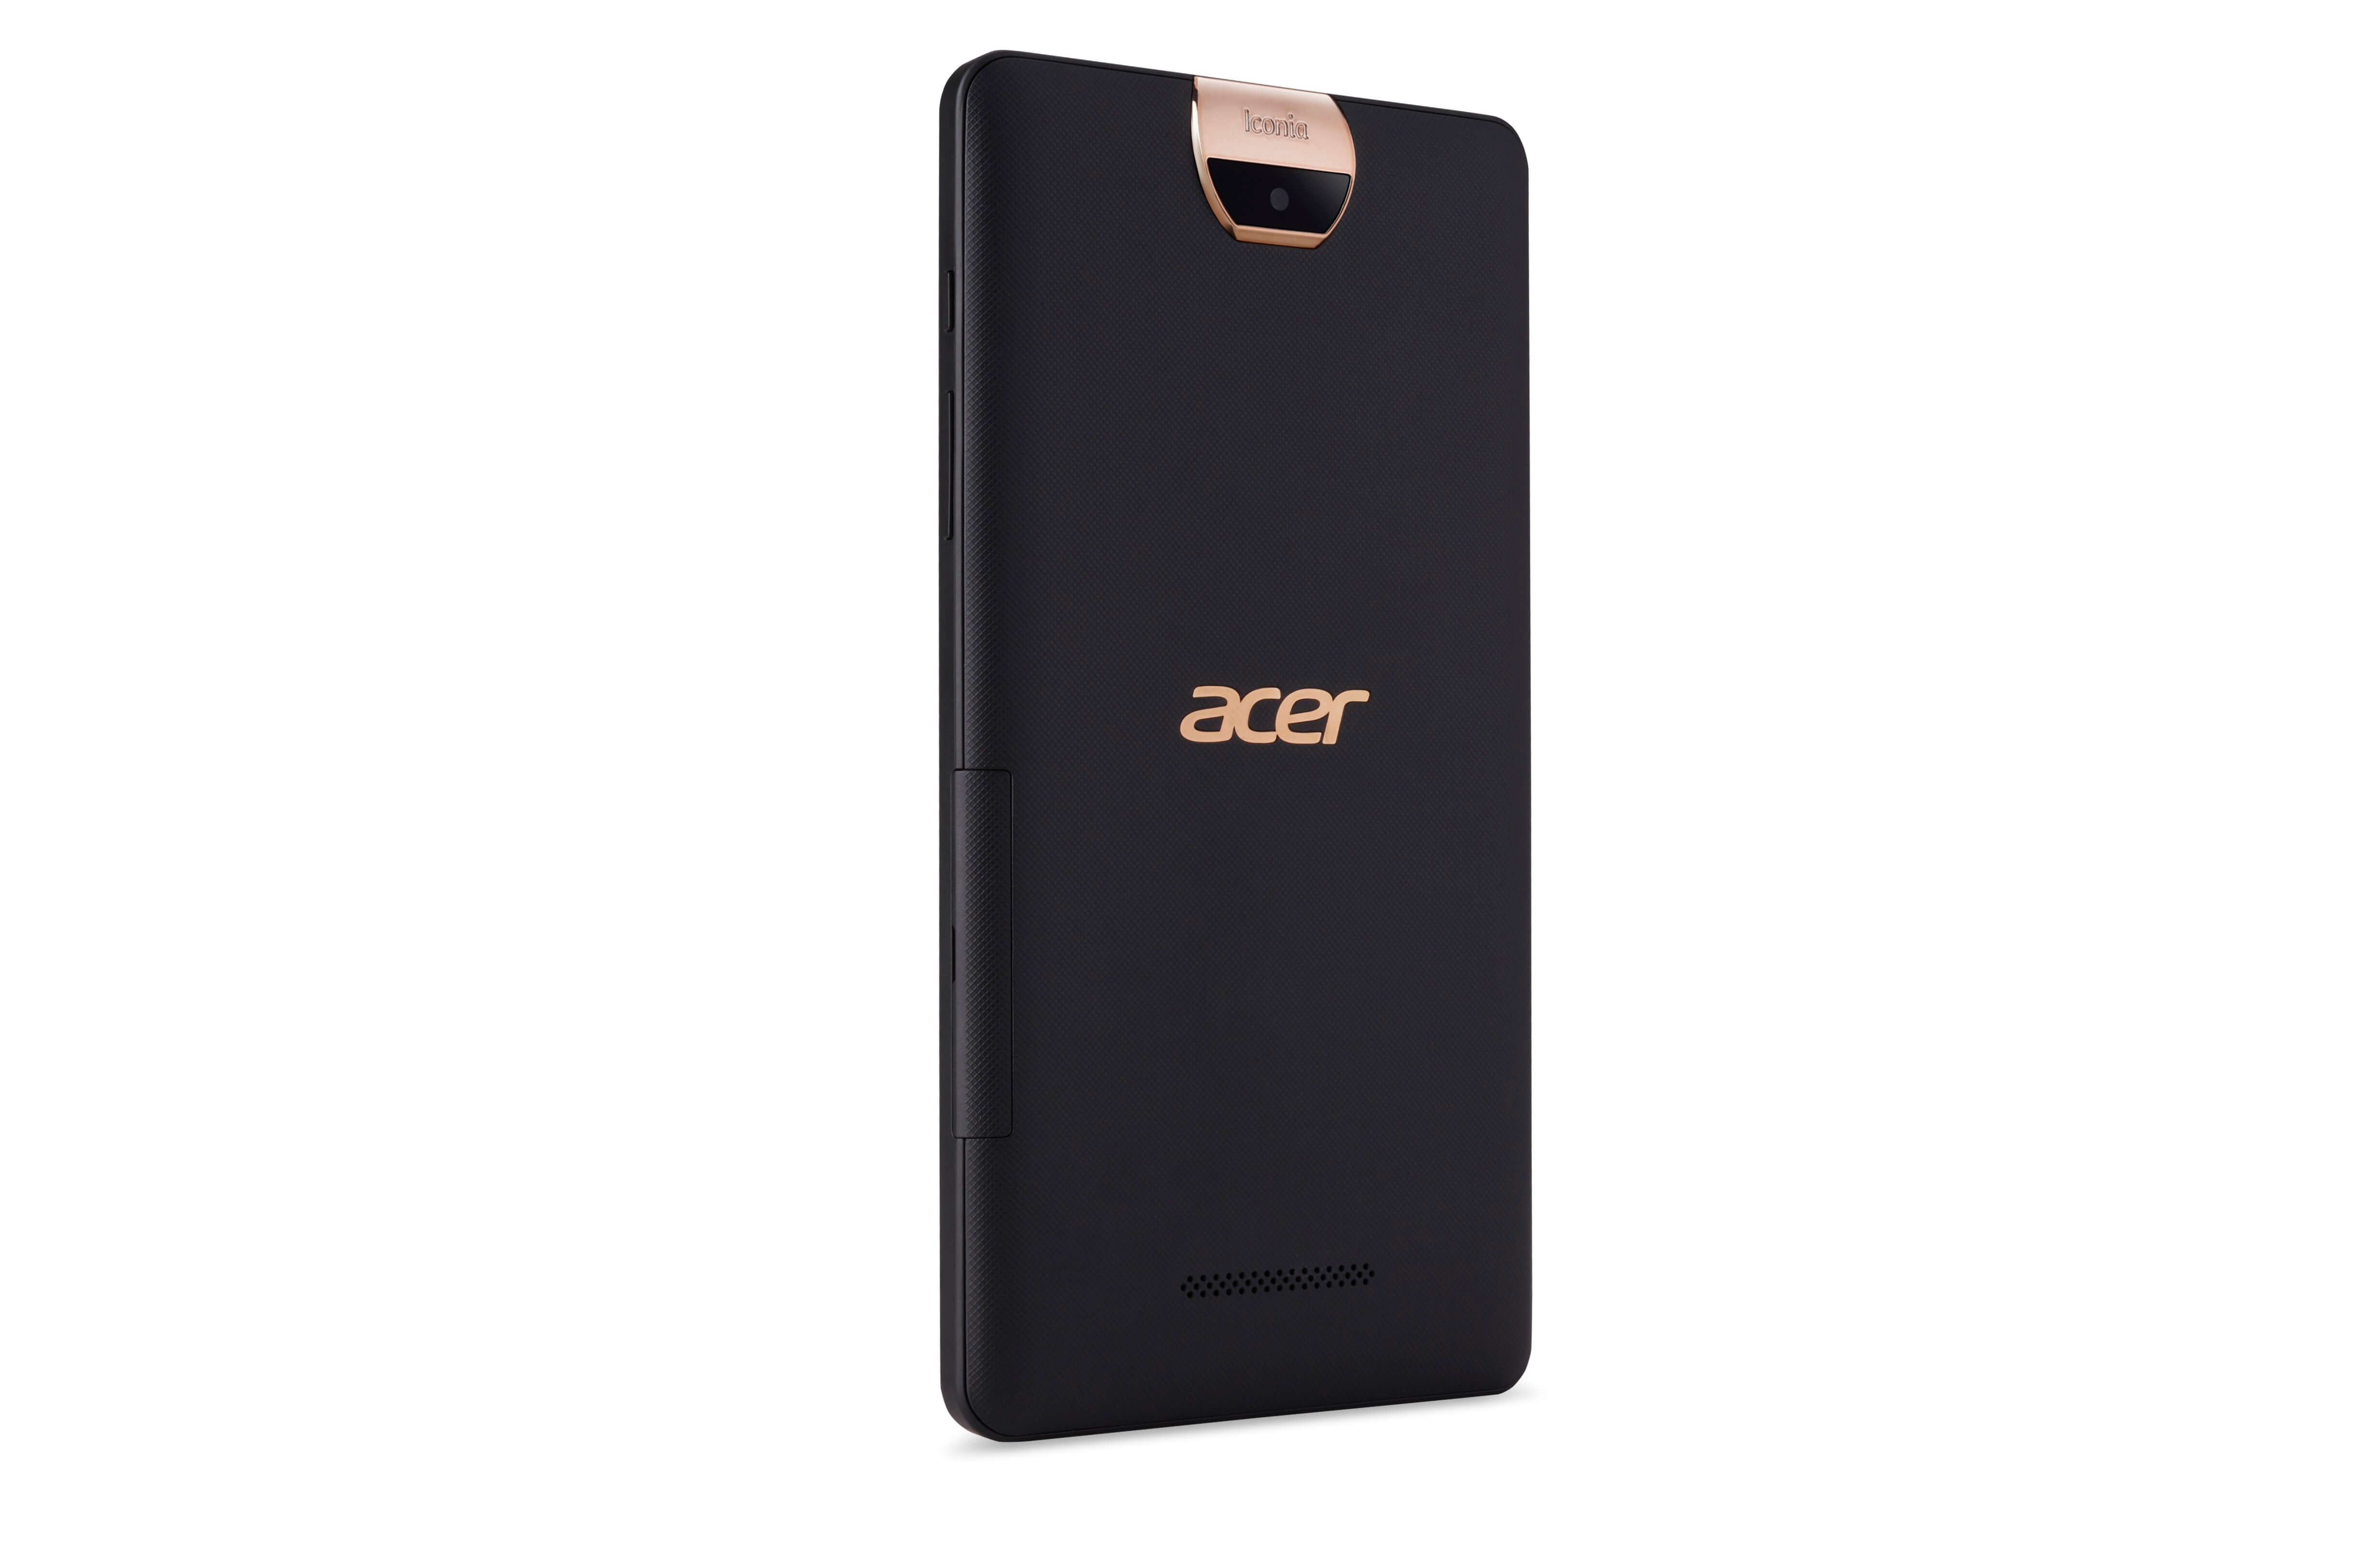 Acer Iconia Talk S back